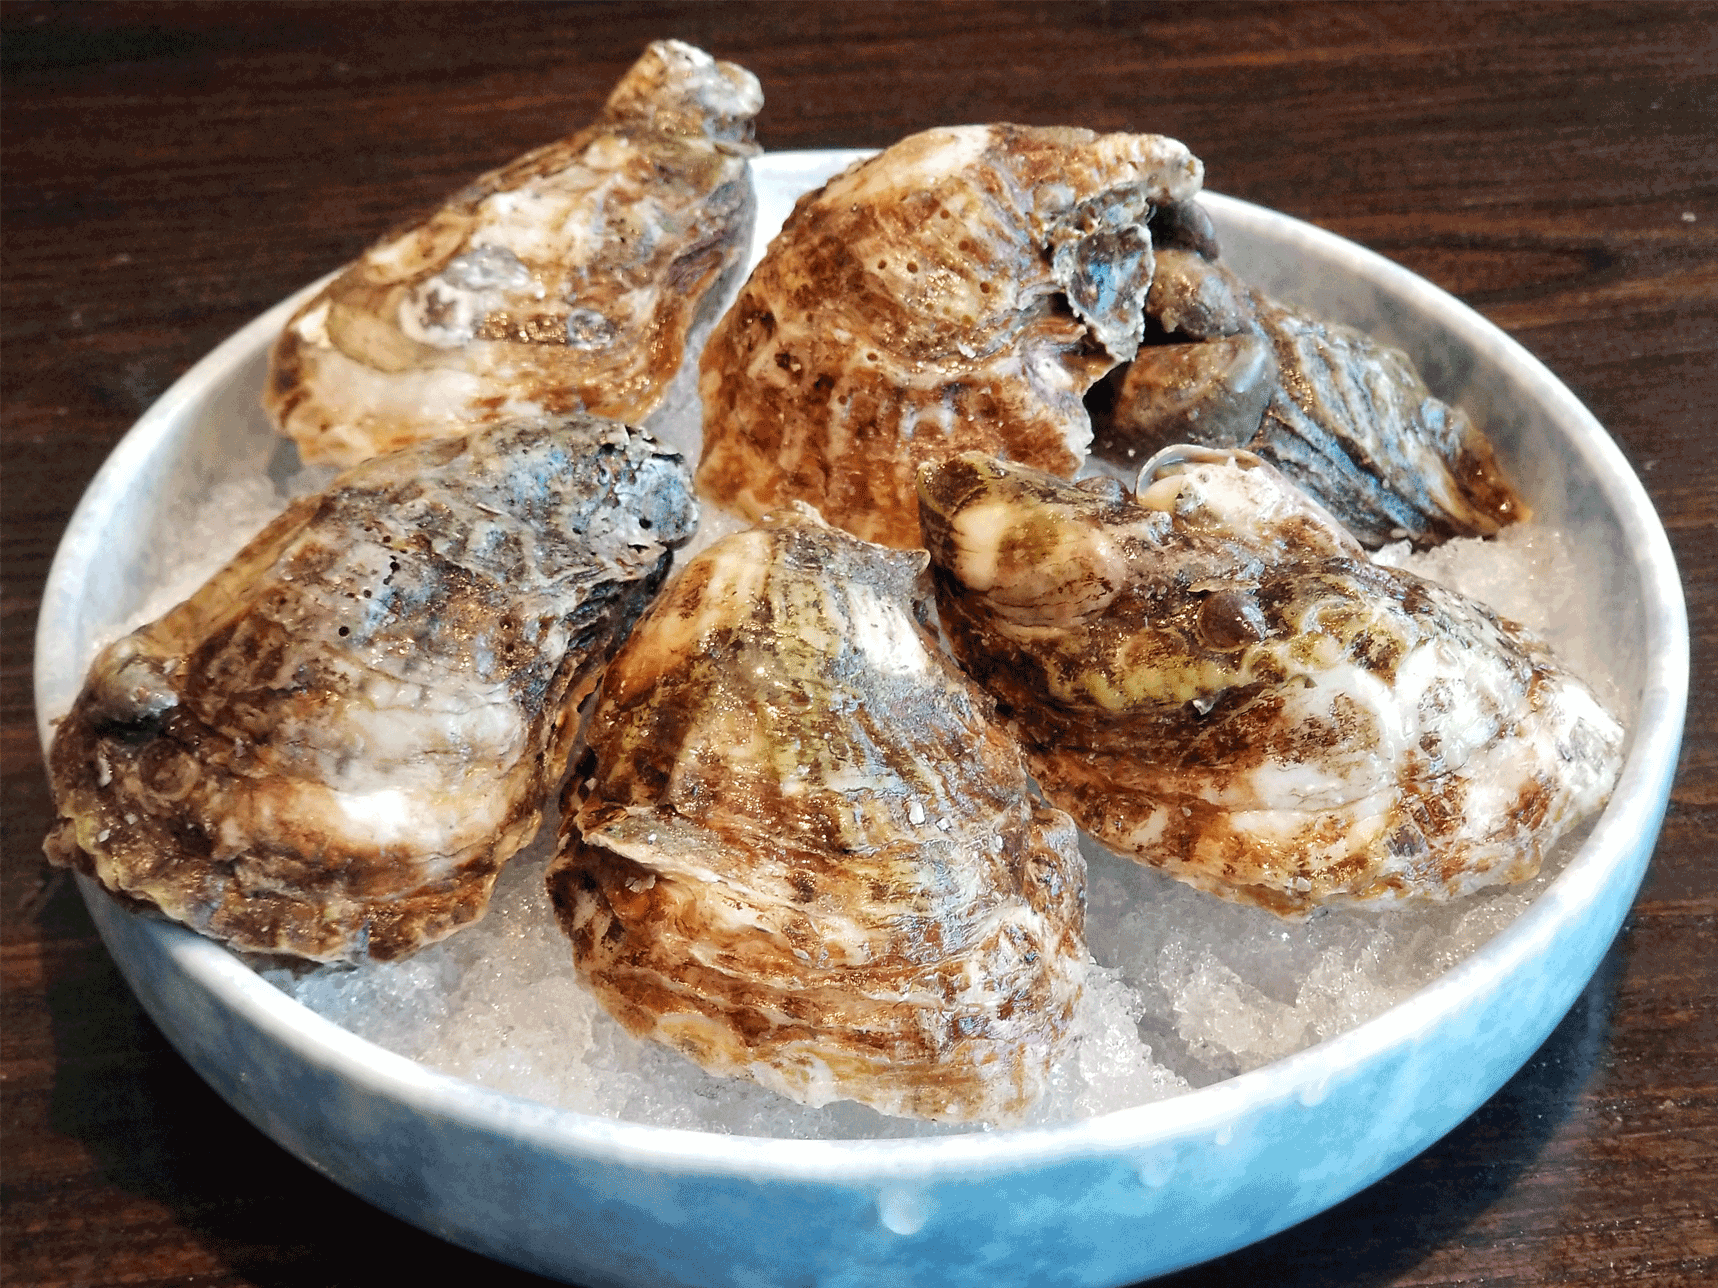 BLUE POINTE OYSTERS